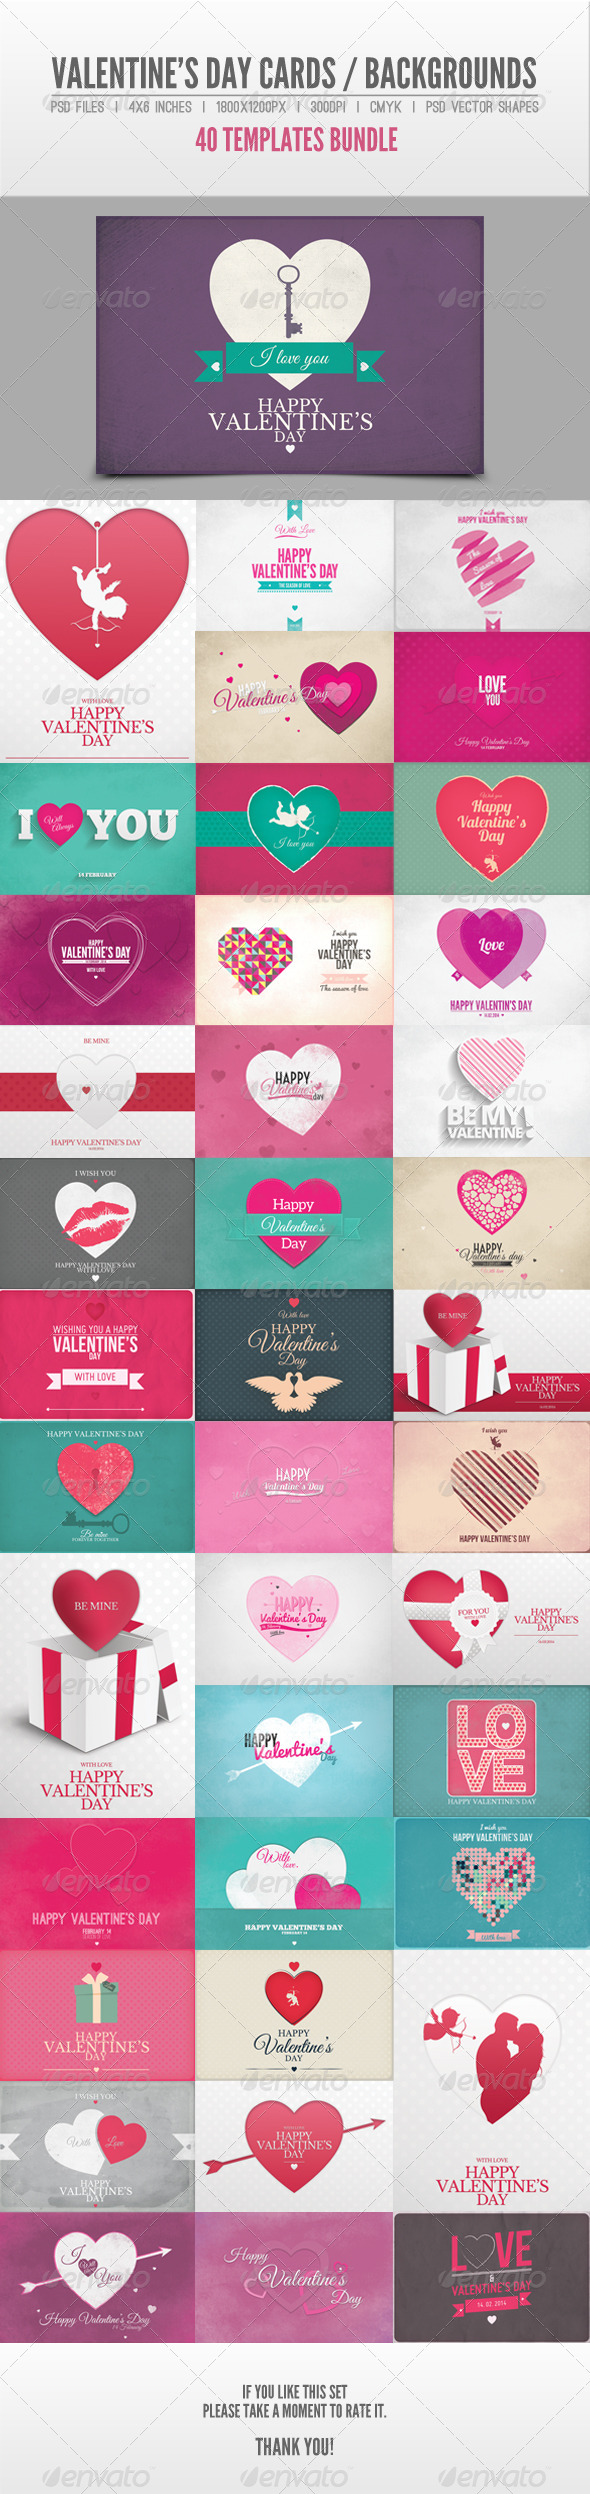 GraphicRiver 40 Valentine s Day Cards Backgrounds Bundle 6578750